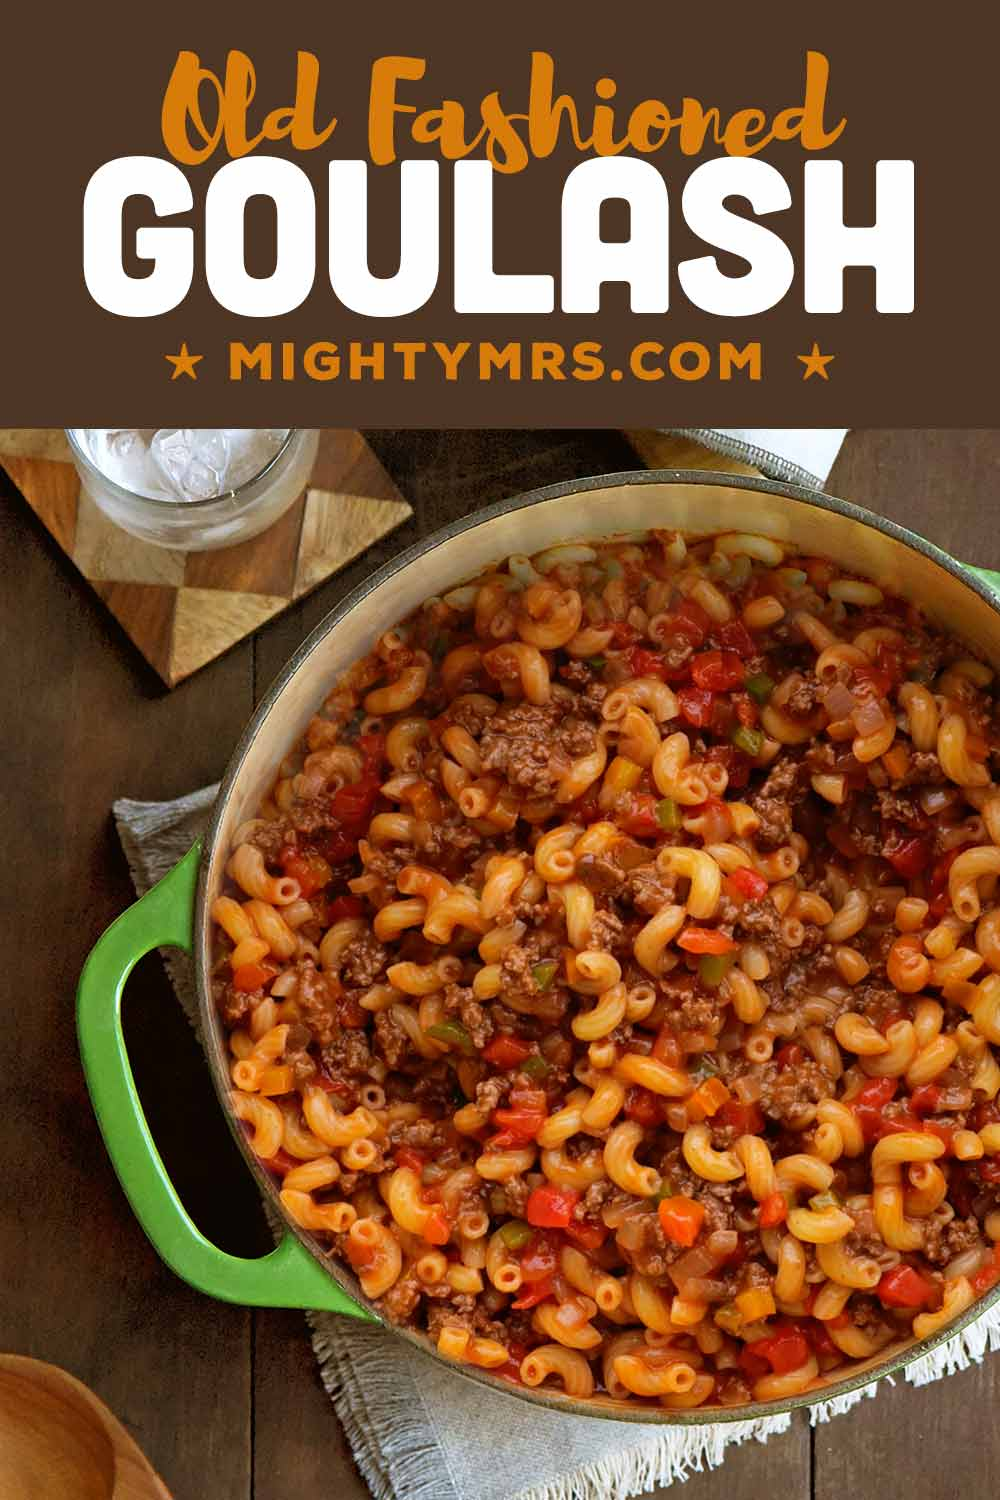 Old Fashioned Ground Beef American Goulash